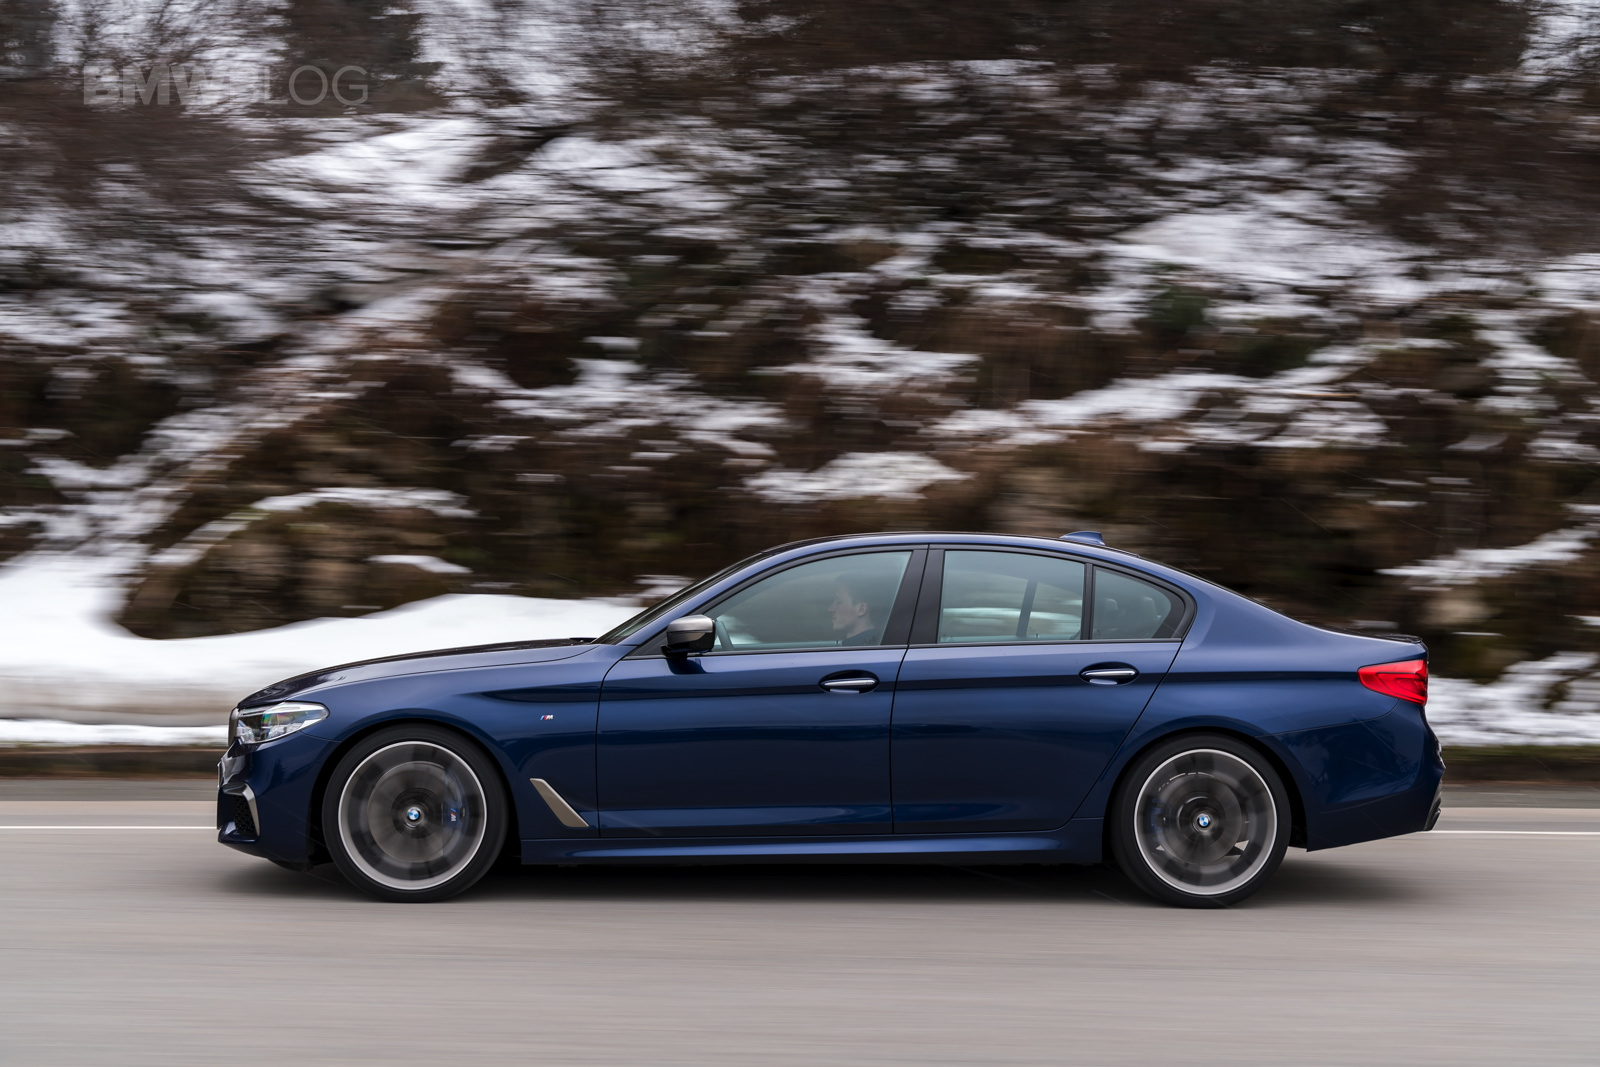 To Learn More About The New M550i Xdrive Please See Video Review Below